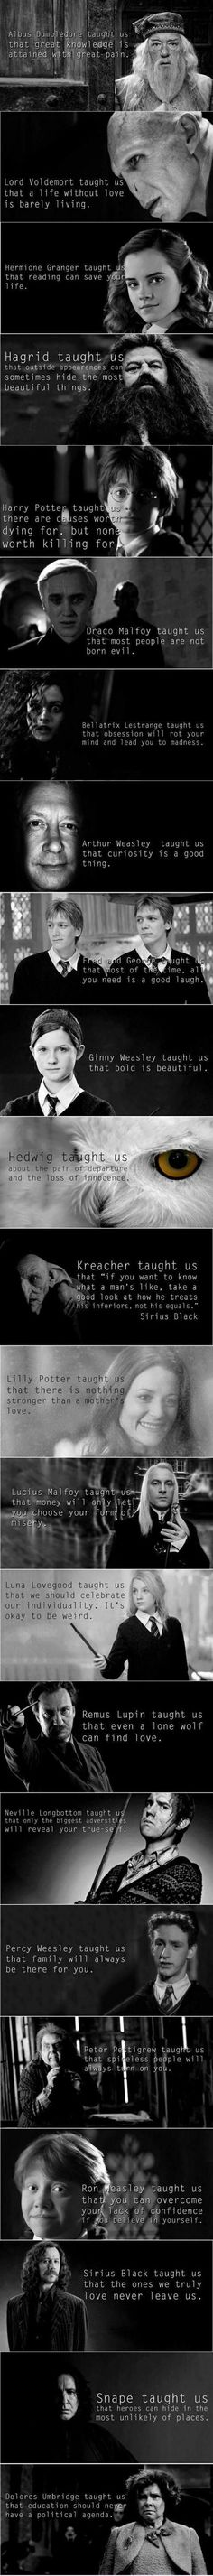 the moral of Harry Potter is. And the moral of Harry Potter is.And the moral of Harry Potter is.